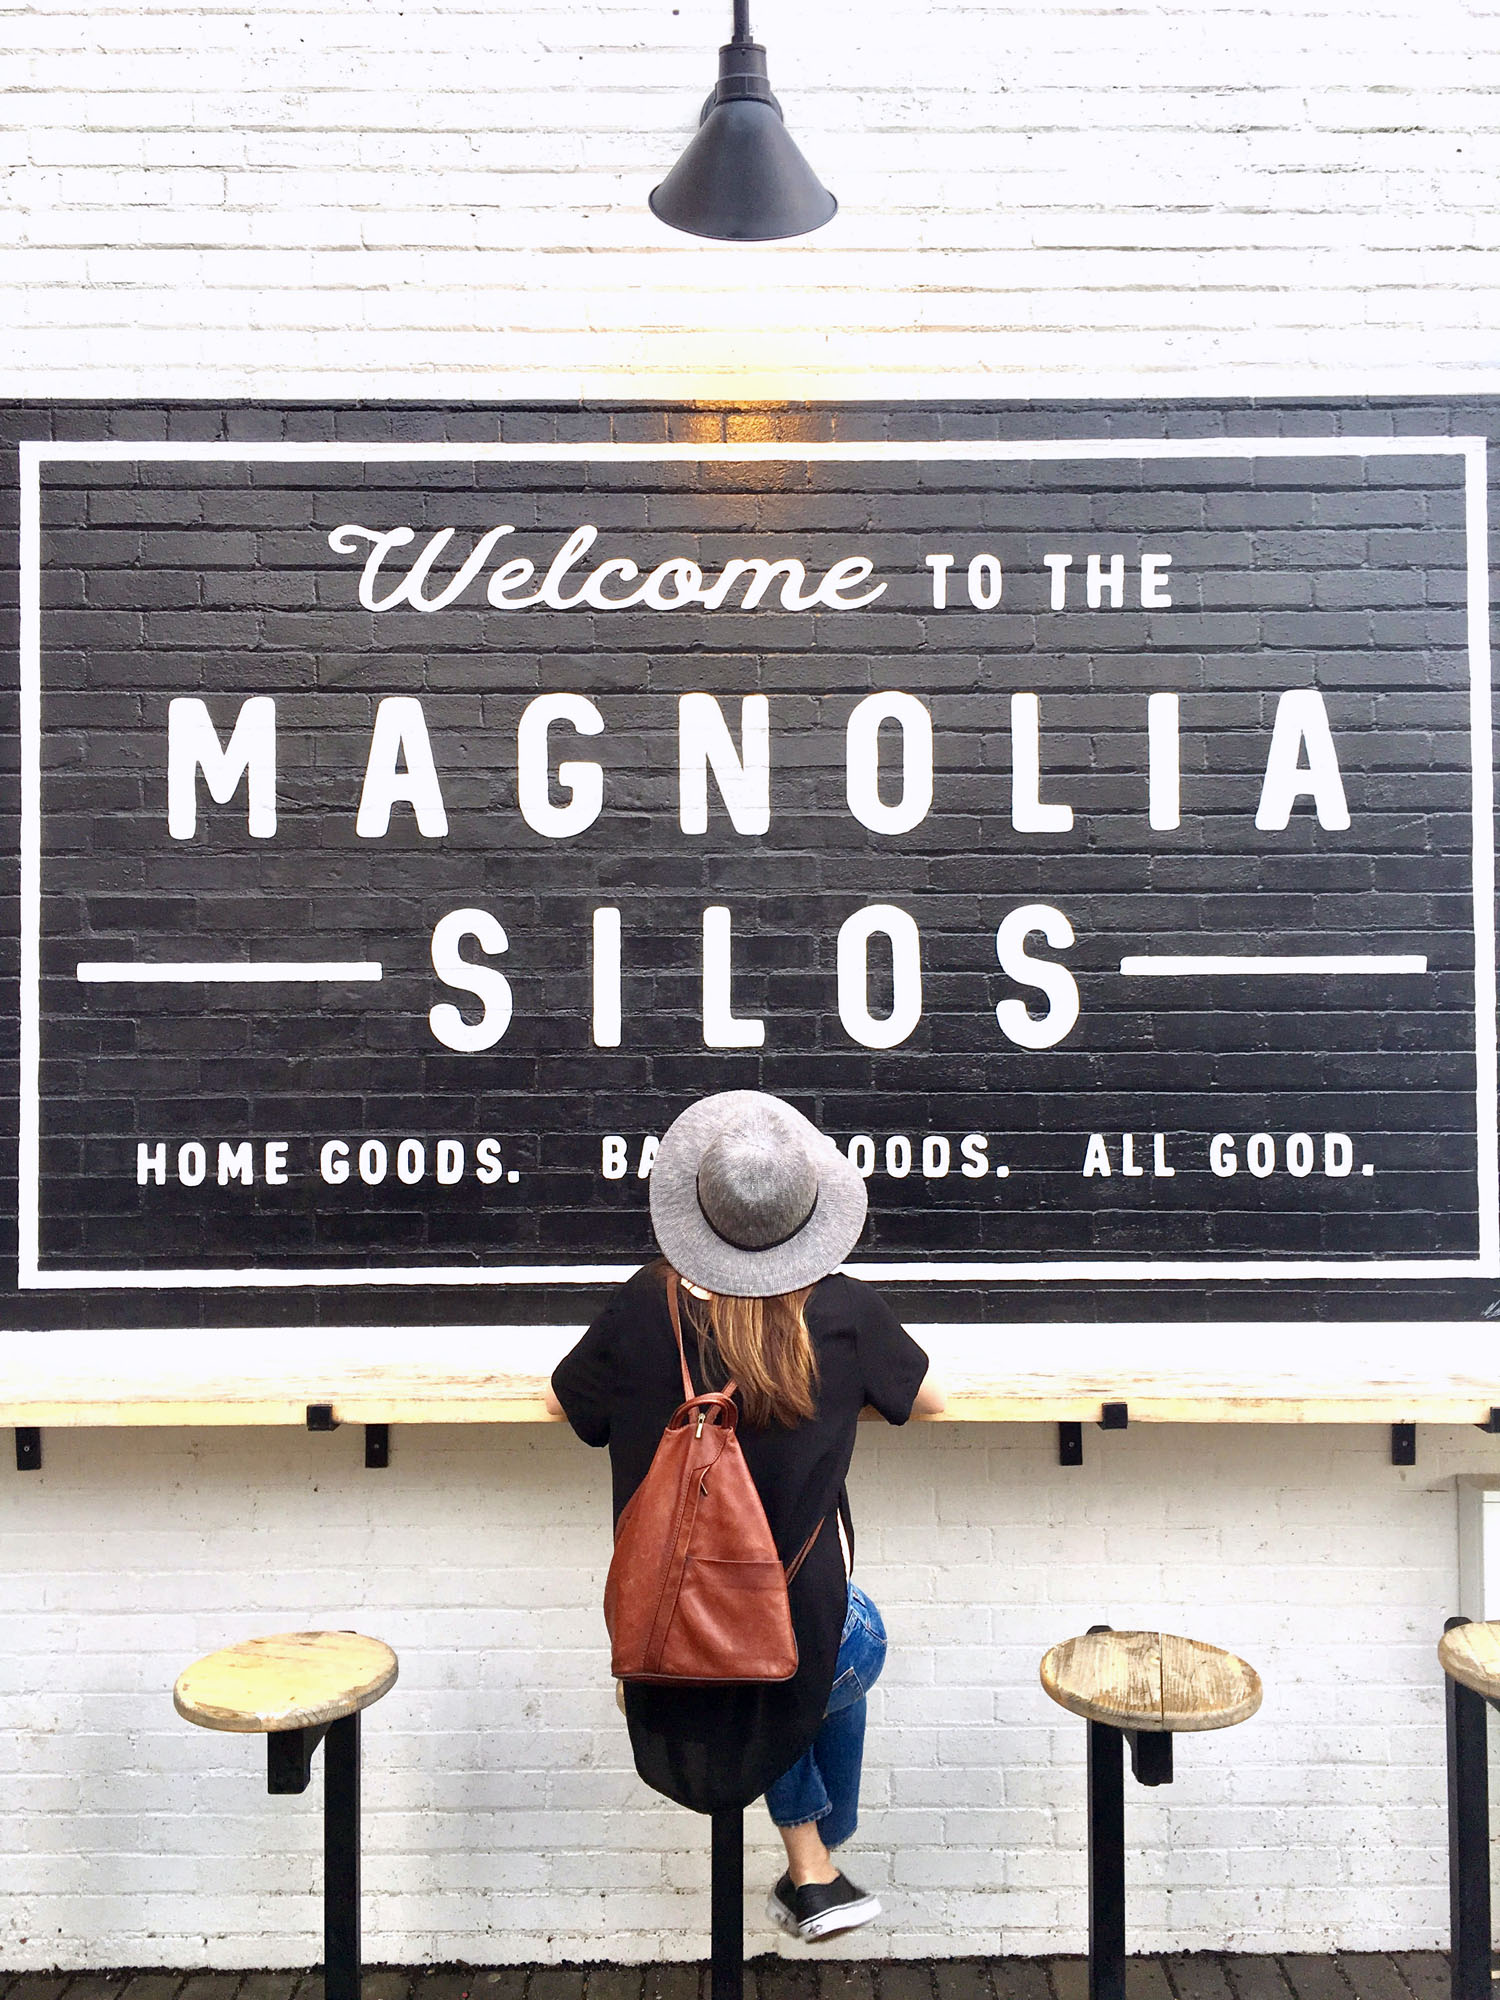 Some of my favorite simple details at Magnolia are the lovely and perfectly minimal signs on the flawless white brick walls.